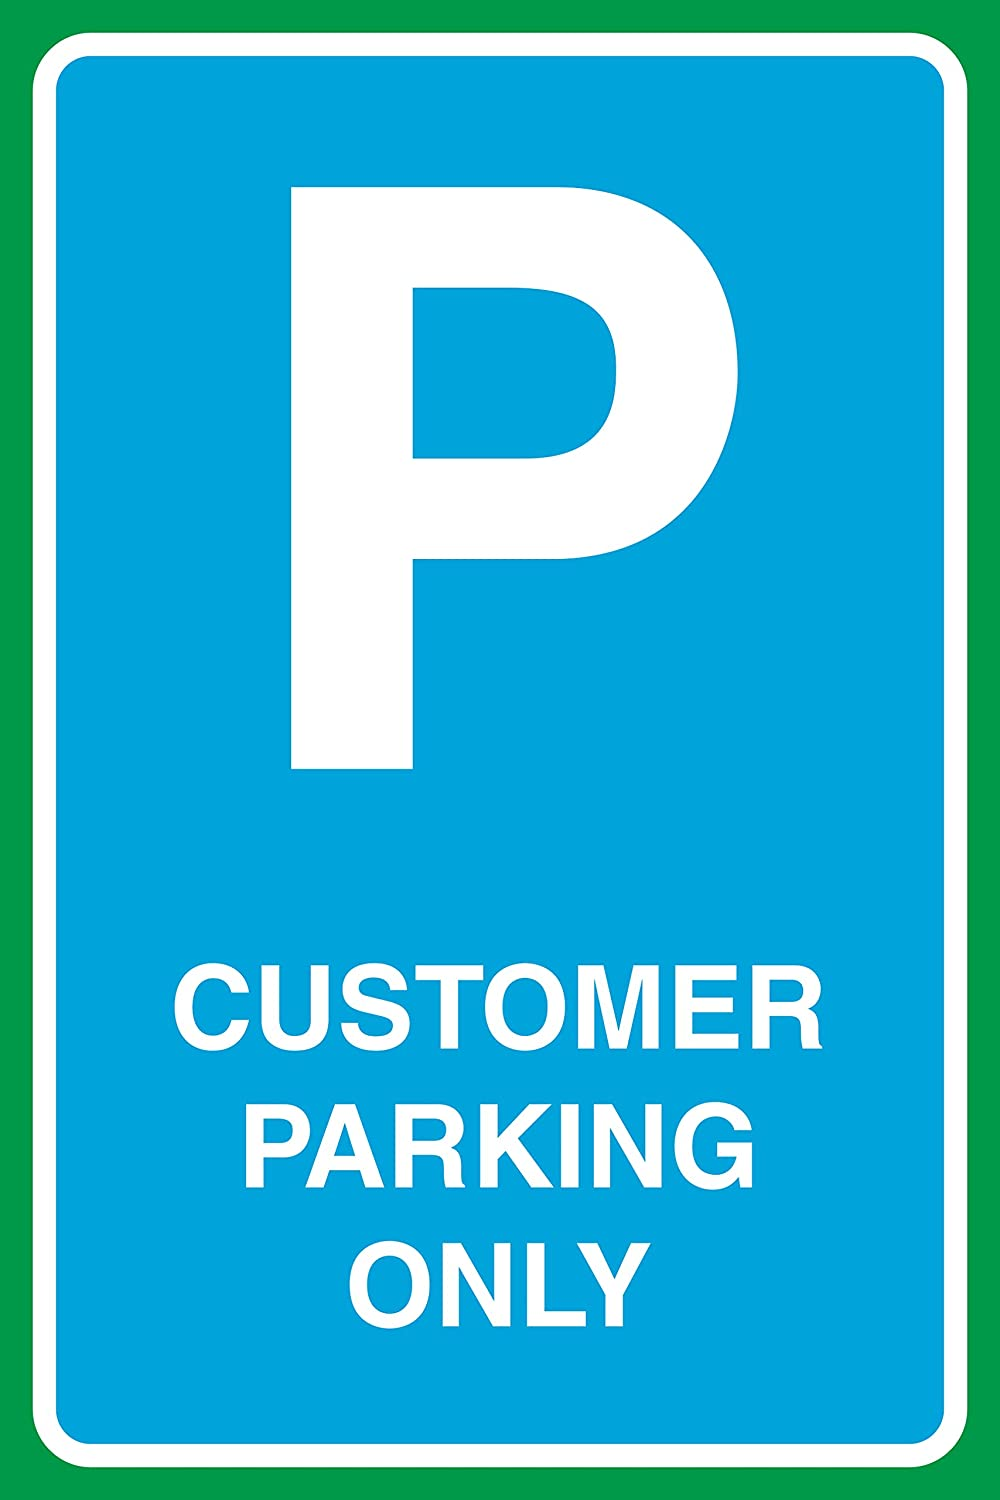 Customer Parking Only Print Parking Car Lot Business Office School Street Road Sign Aluminum Metal